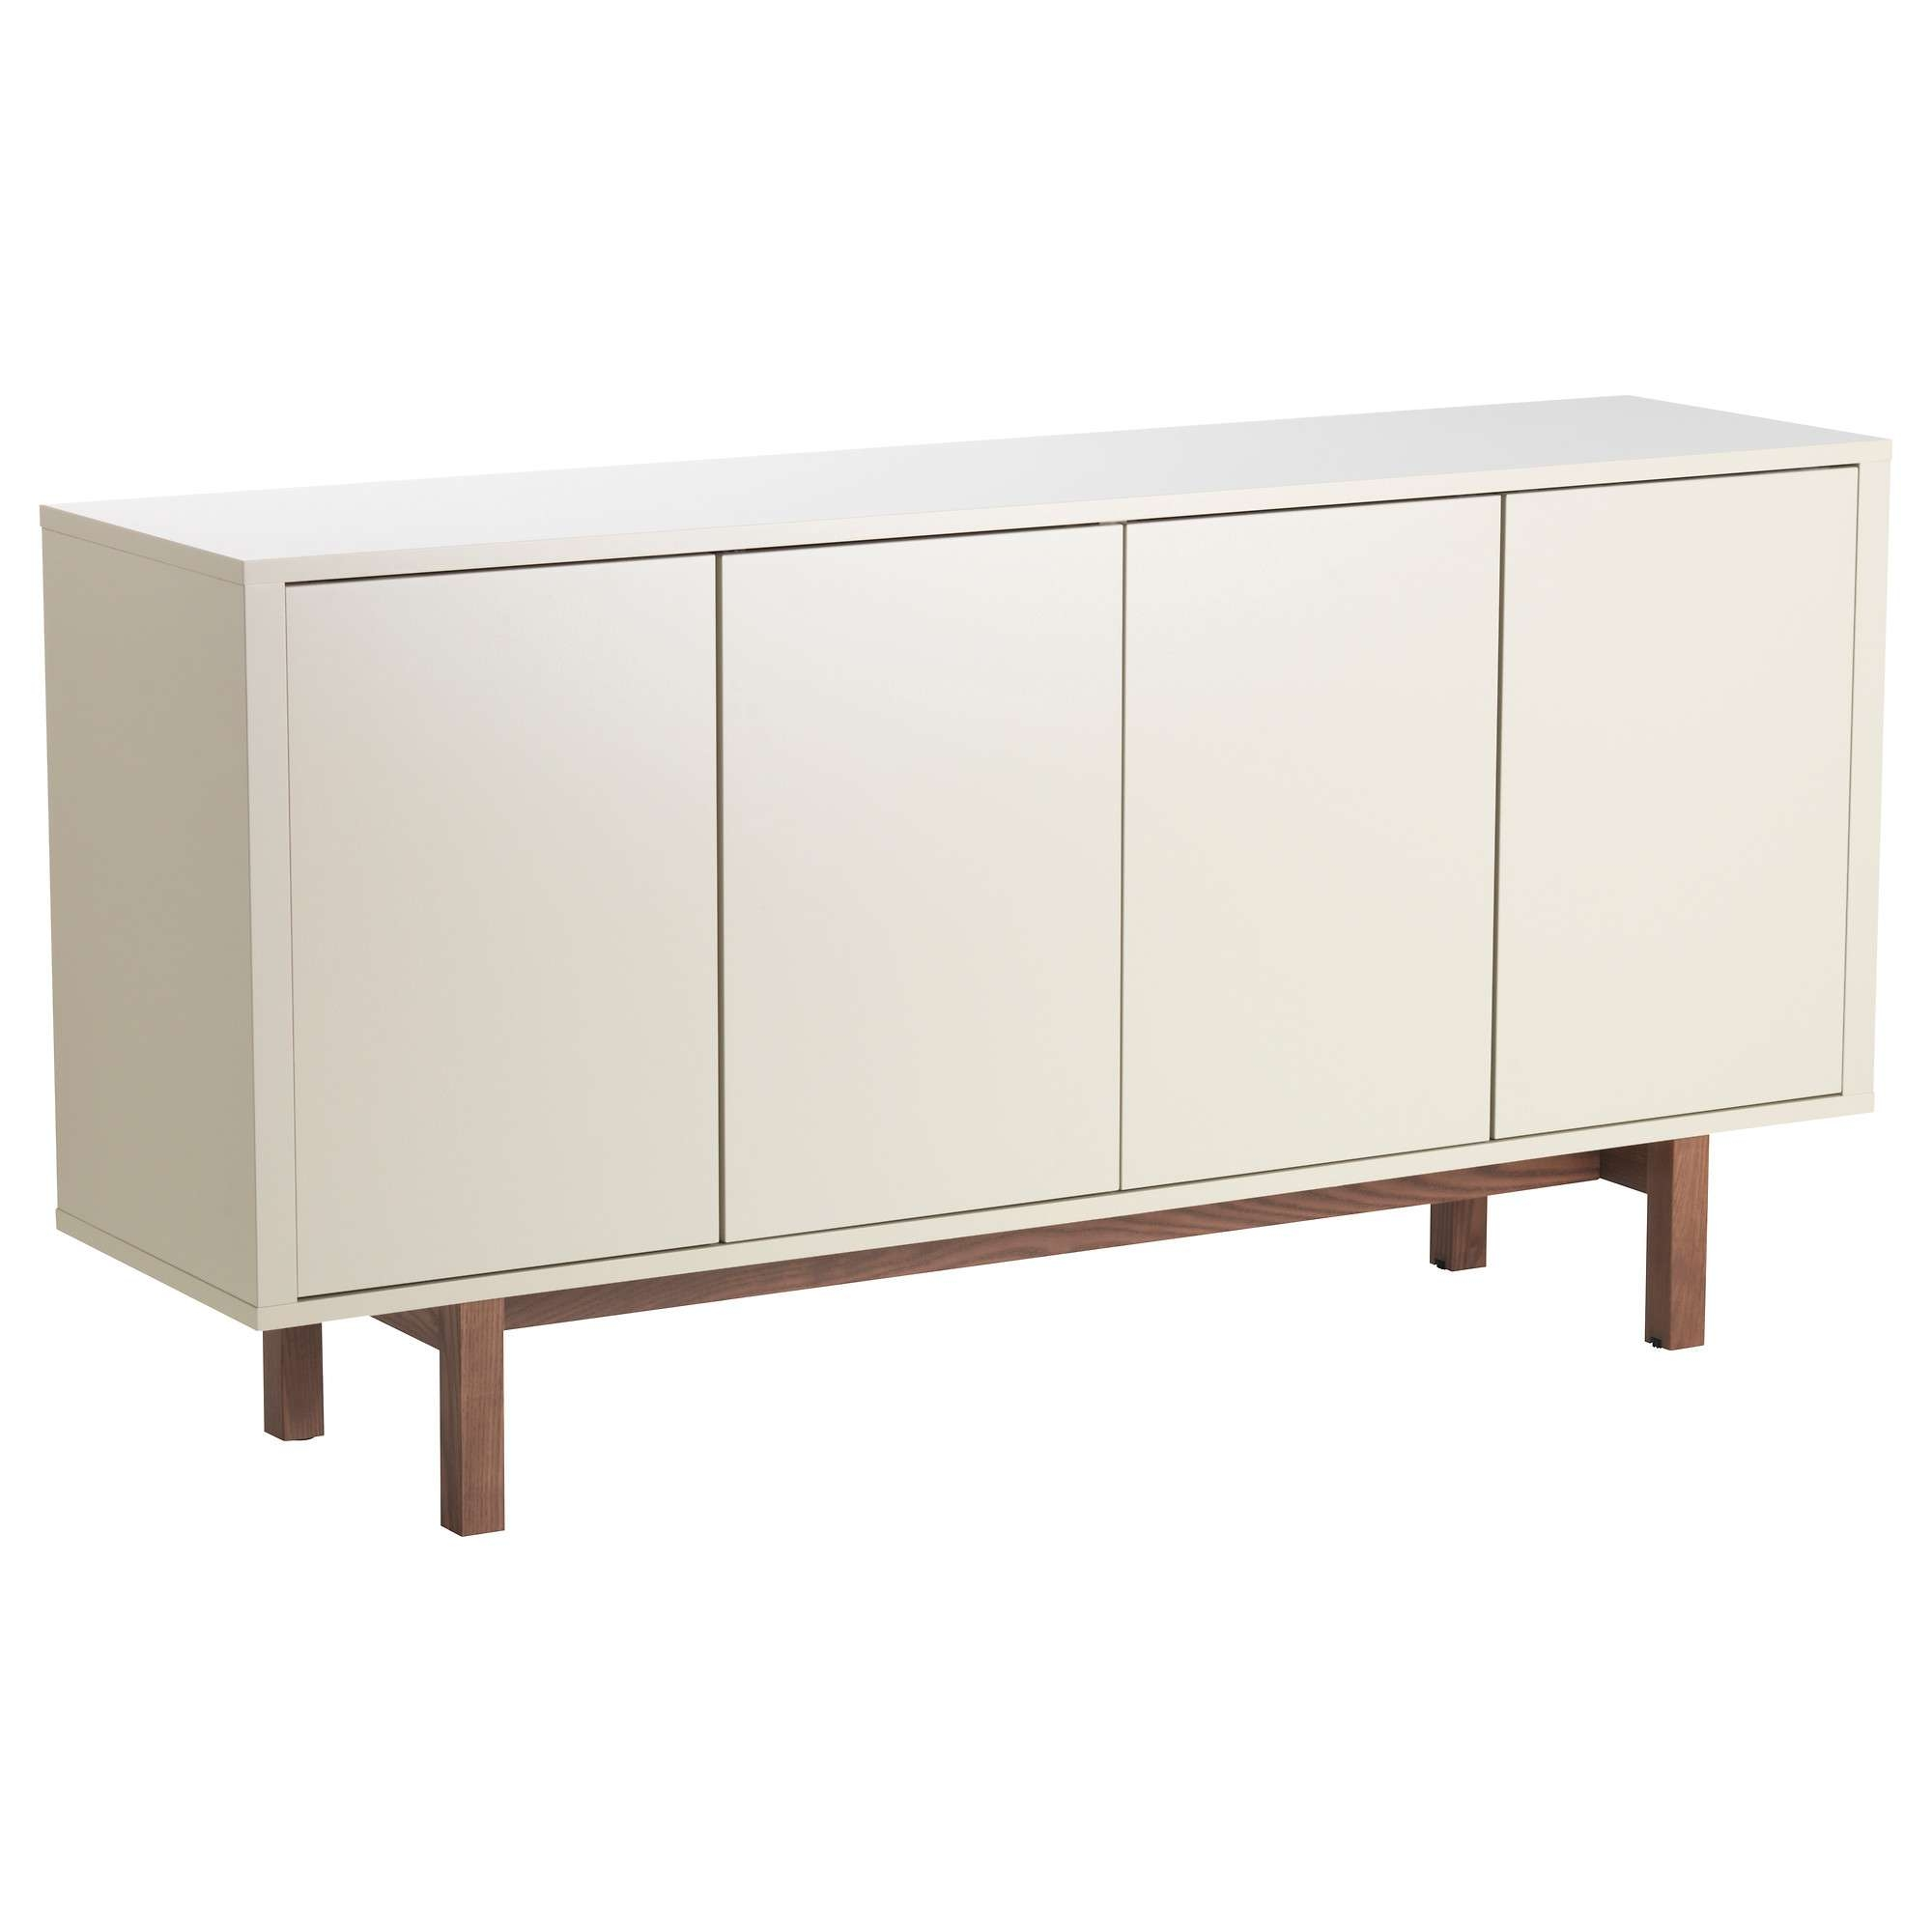 Awesome Ikea Stockholm Sideboard – Bjdgjy Pertaining To Ikea Stockholm Sideboards (View 1 of 20)